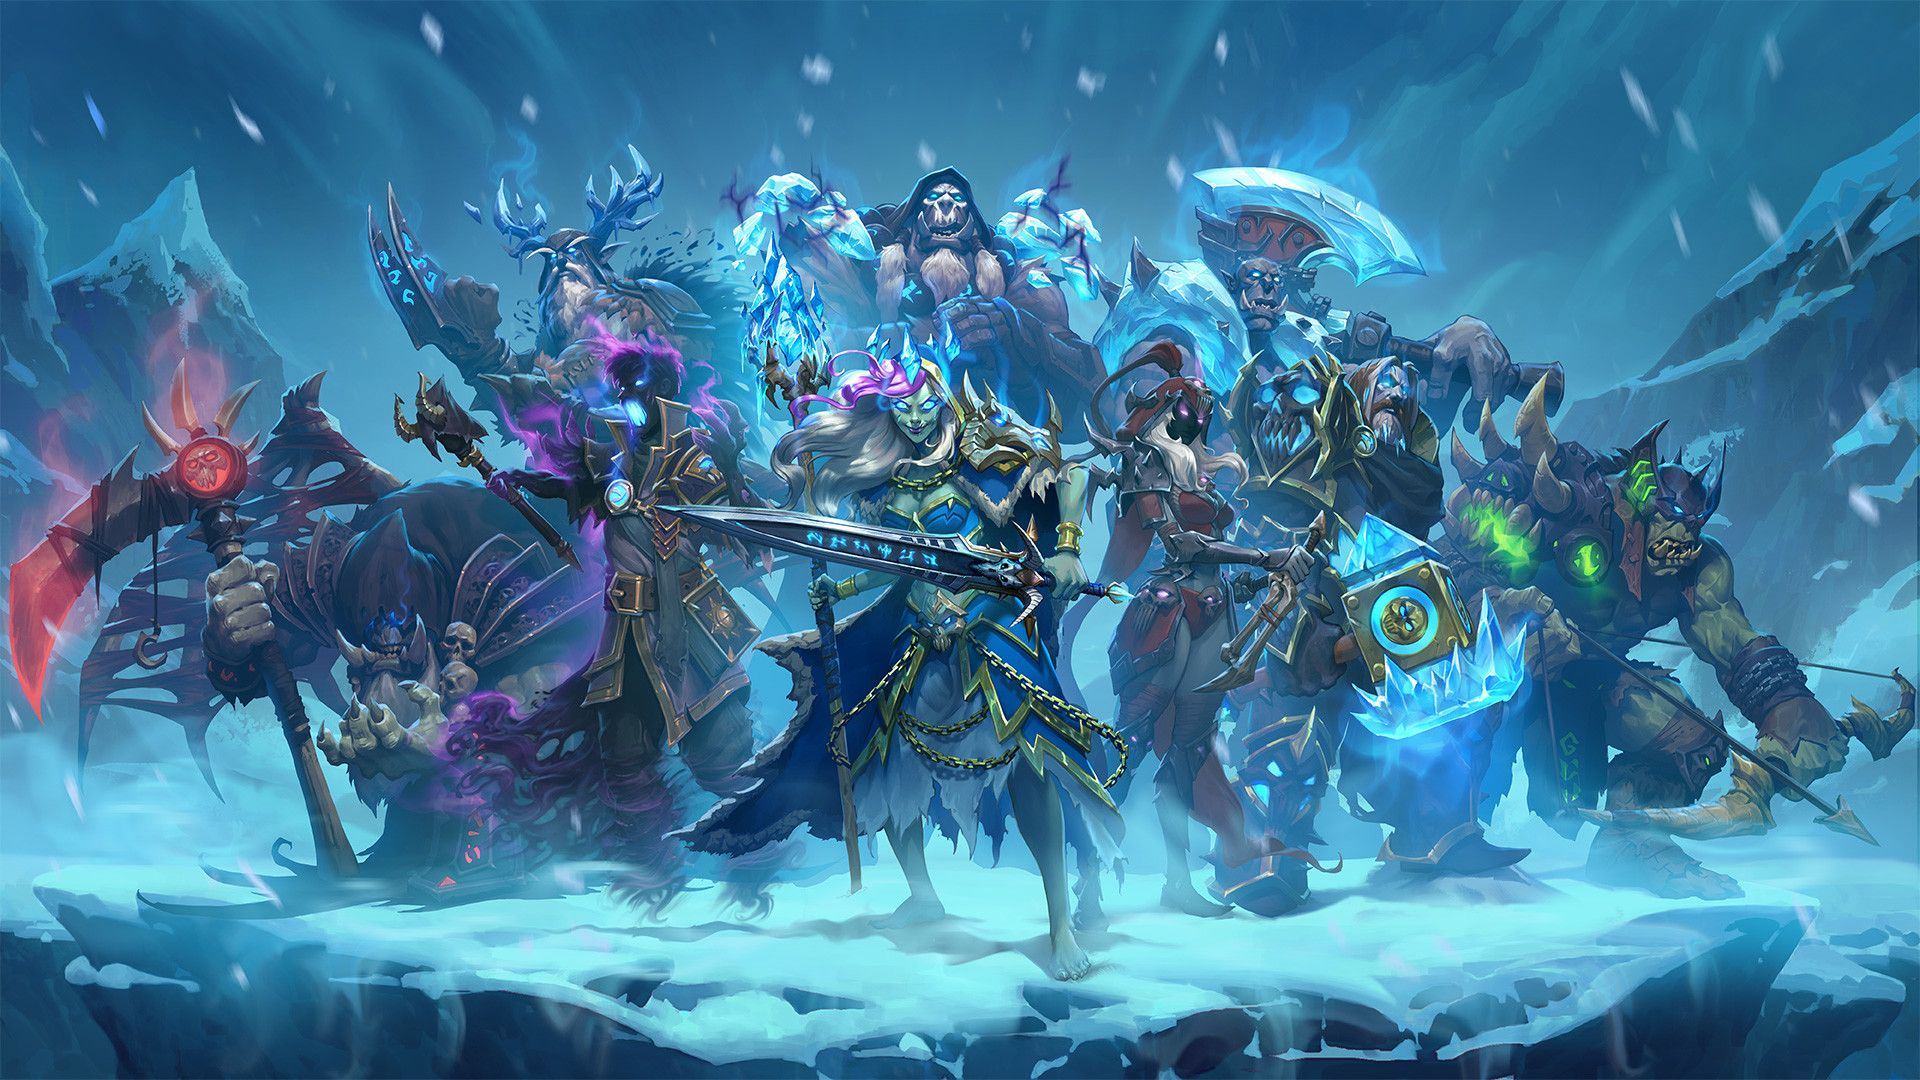 Hearthstone Wallpapers   Top Hearthstone Backgrounds 1920x1080